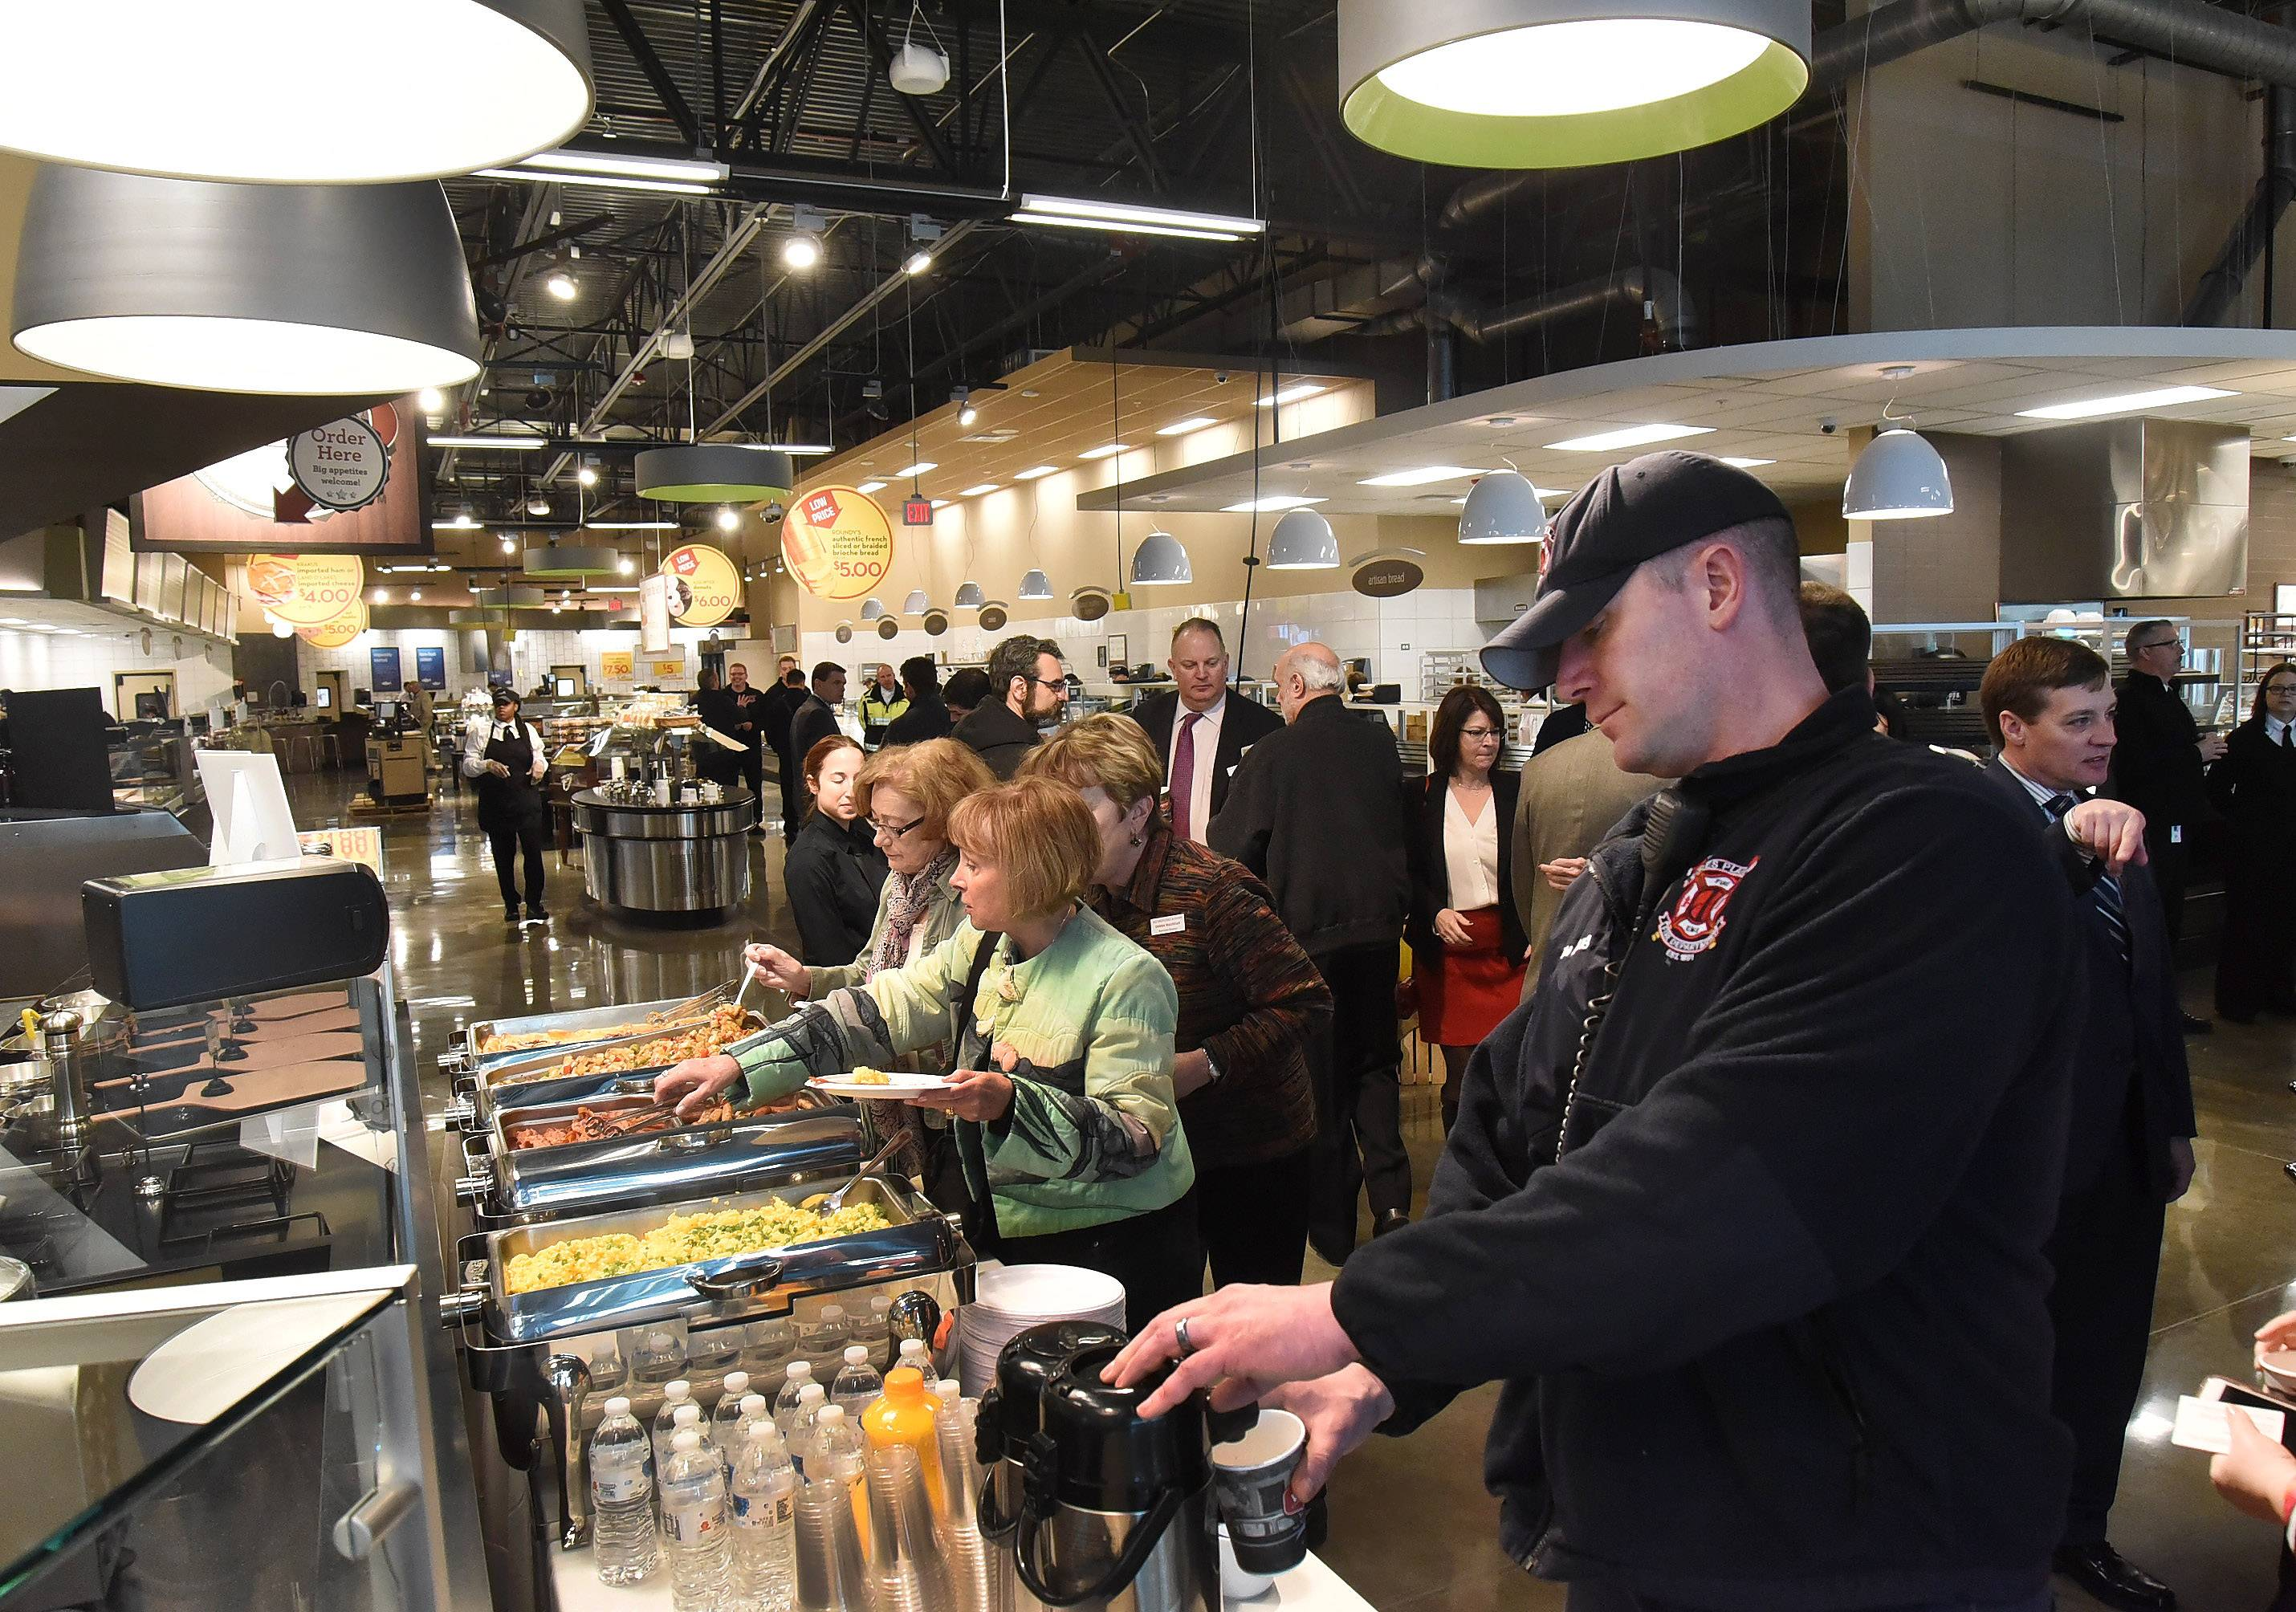 Guests help themselves to breakfast Monday, as city leaders and Mariano's officials gathered to celebrate the opening of the grocery store chain's newest location in Des Plaines. The store opens to the public at 6 a.m. Tuesday.